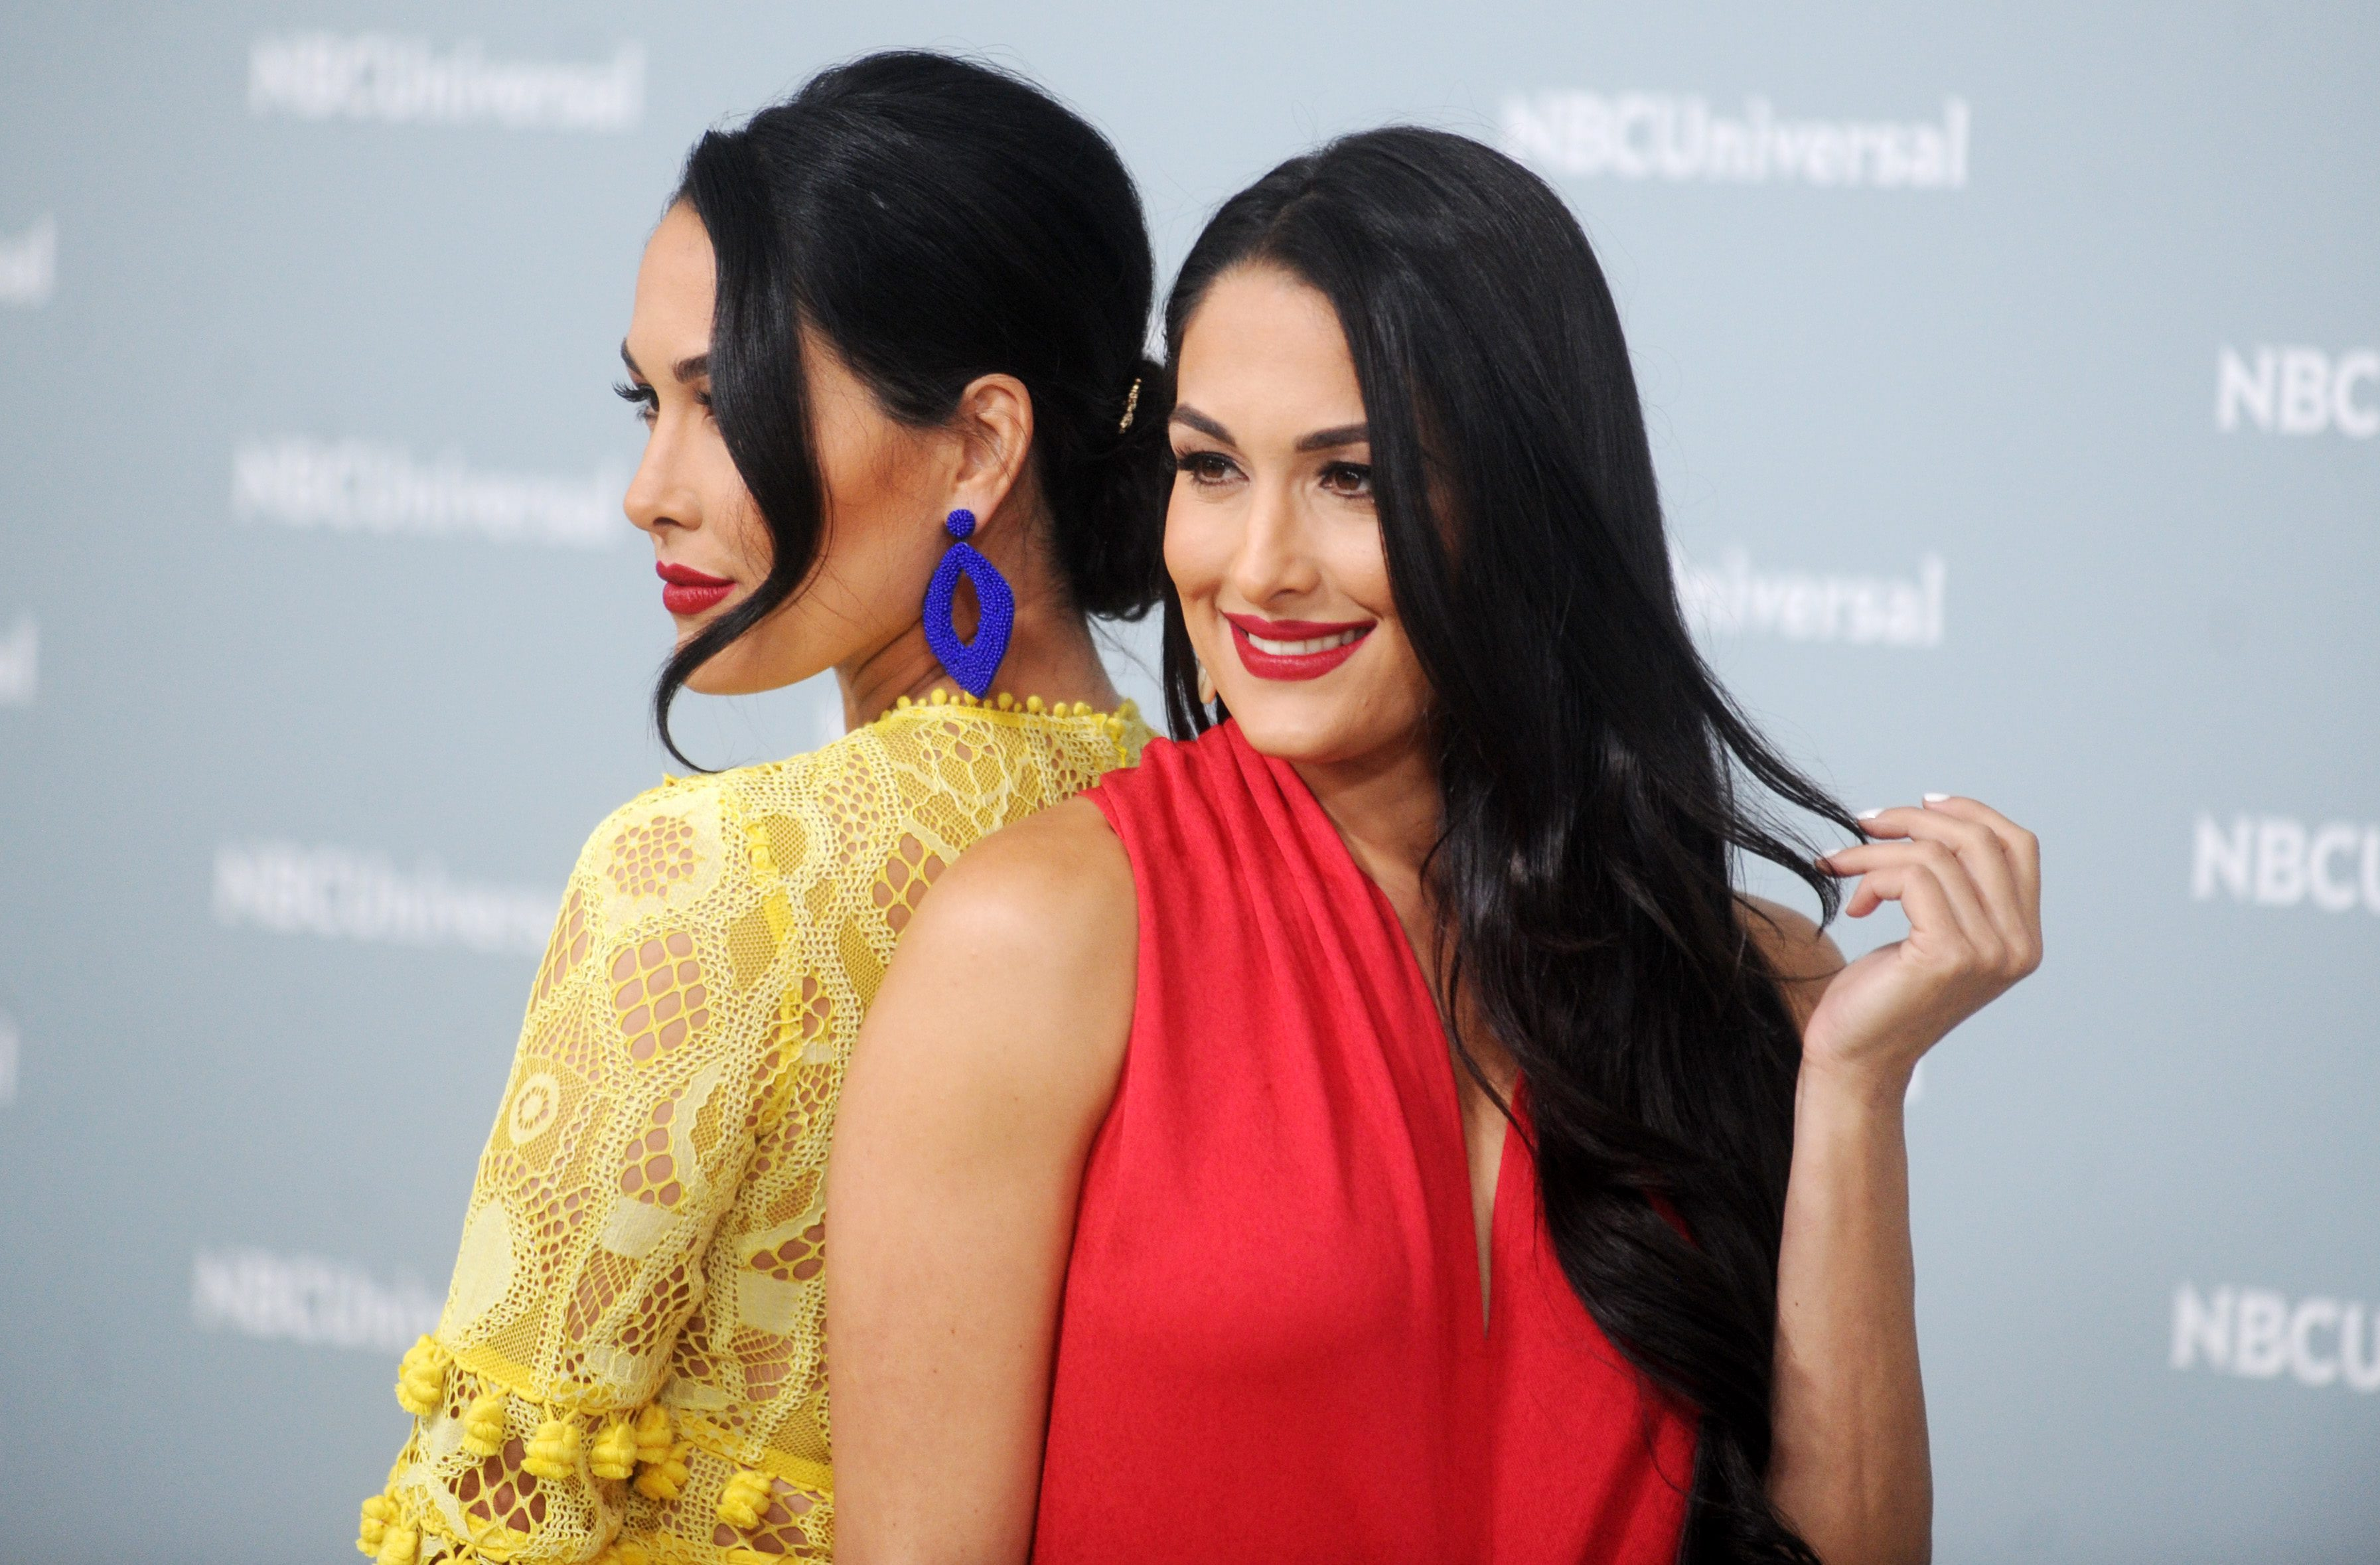 Nikki And Brie Bella Share Stunning Pics From Their Nude Maternity Photoshoot